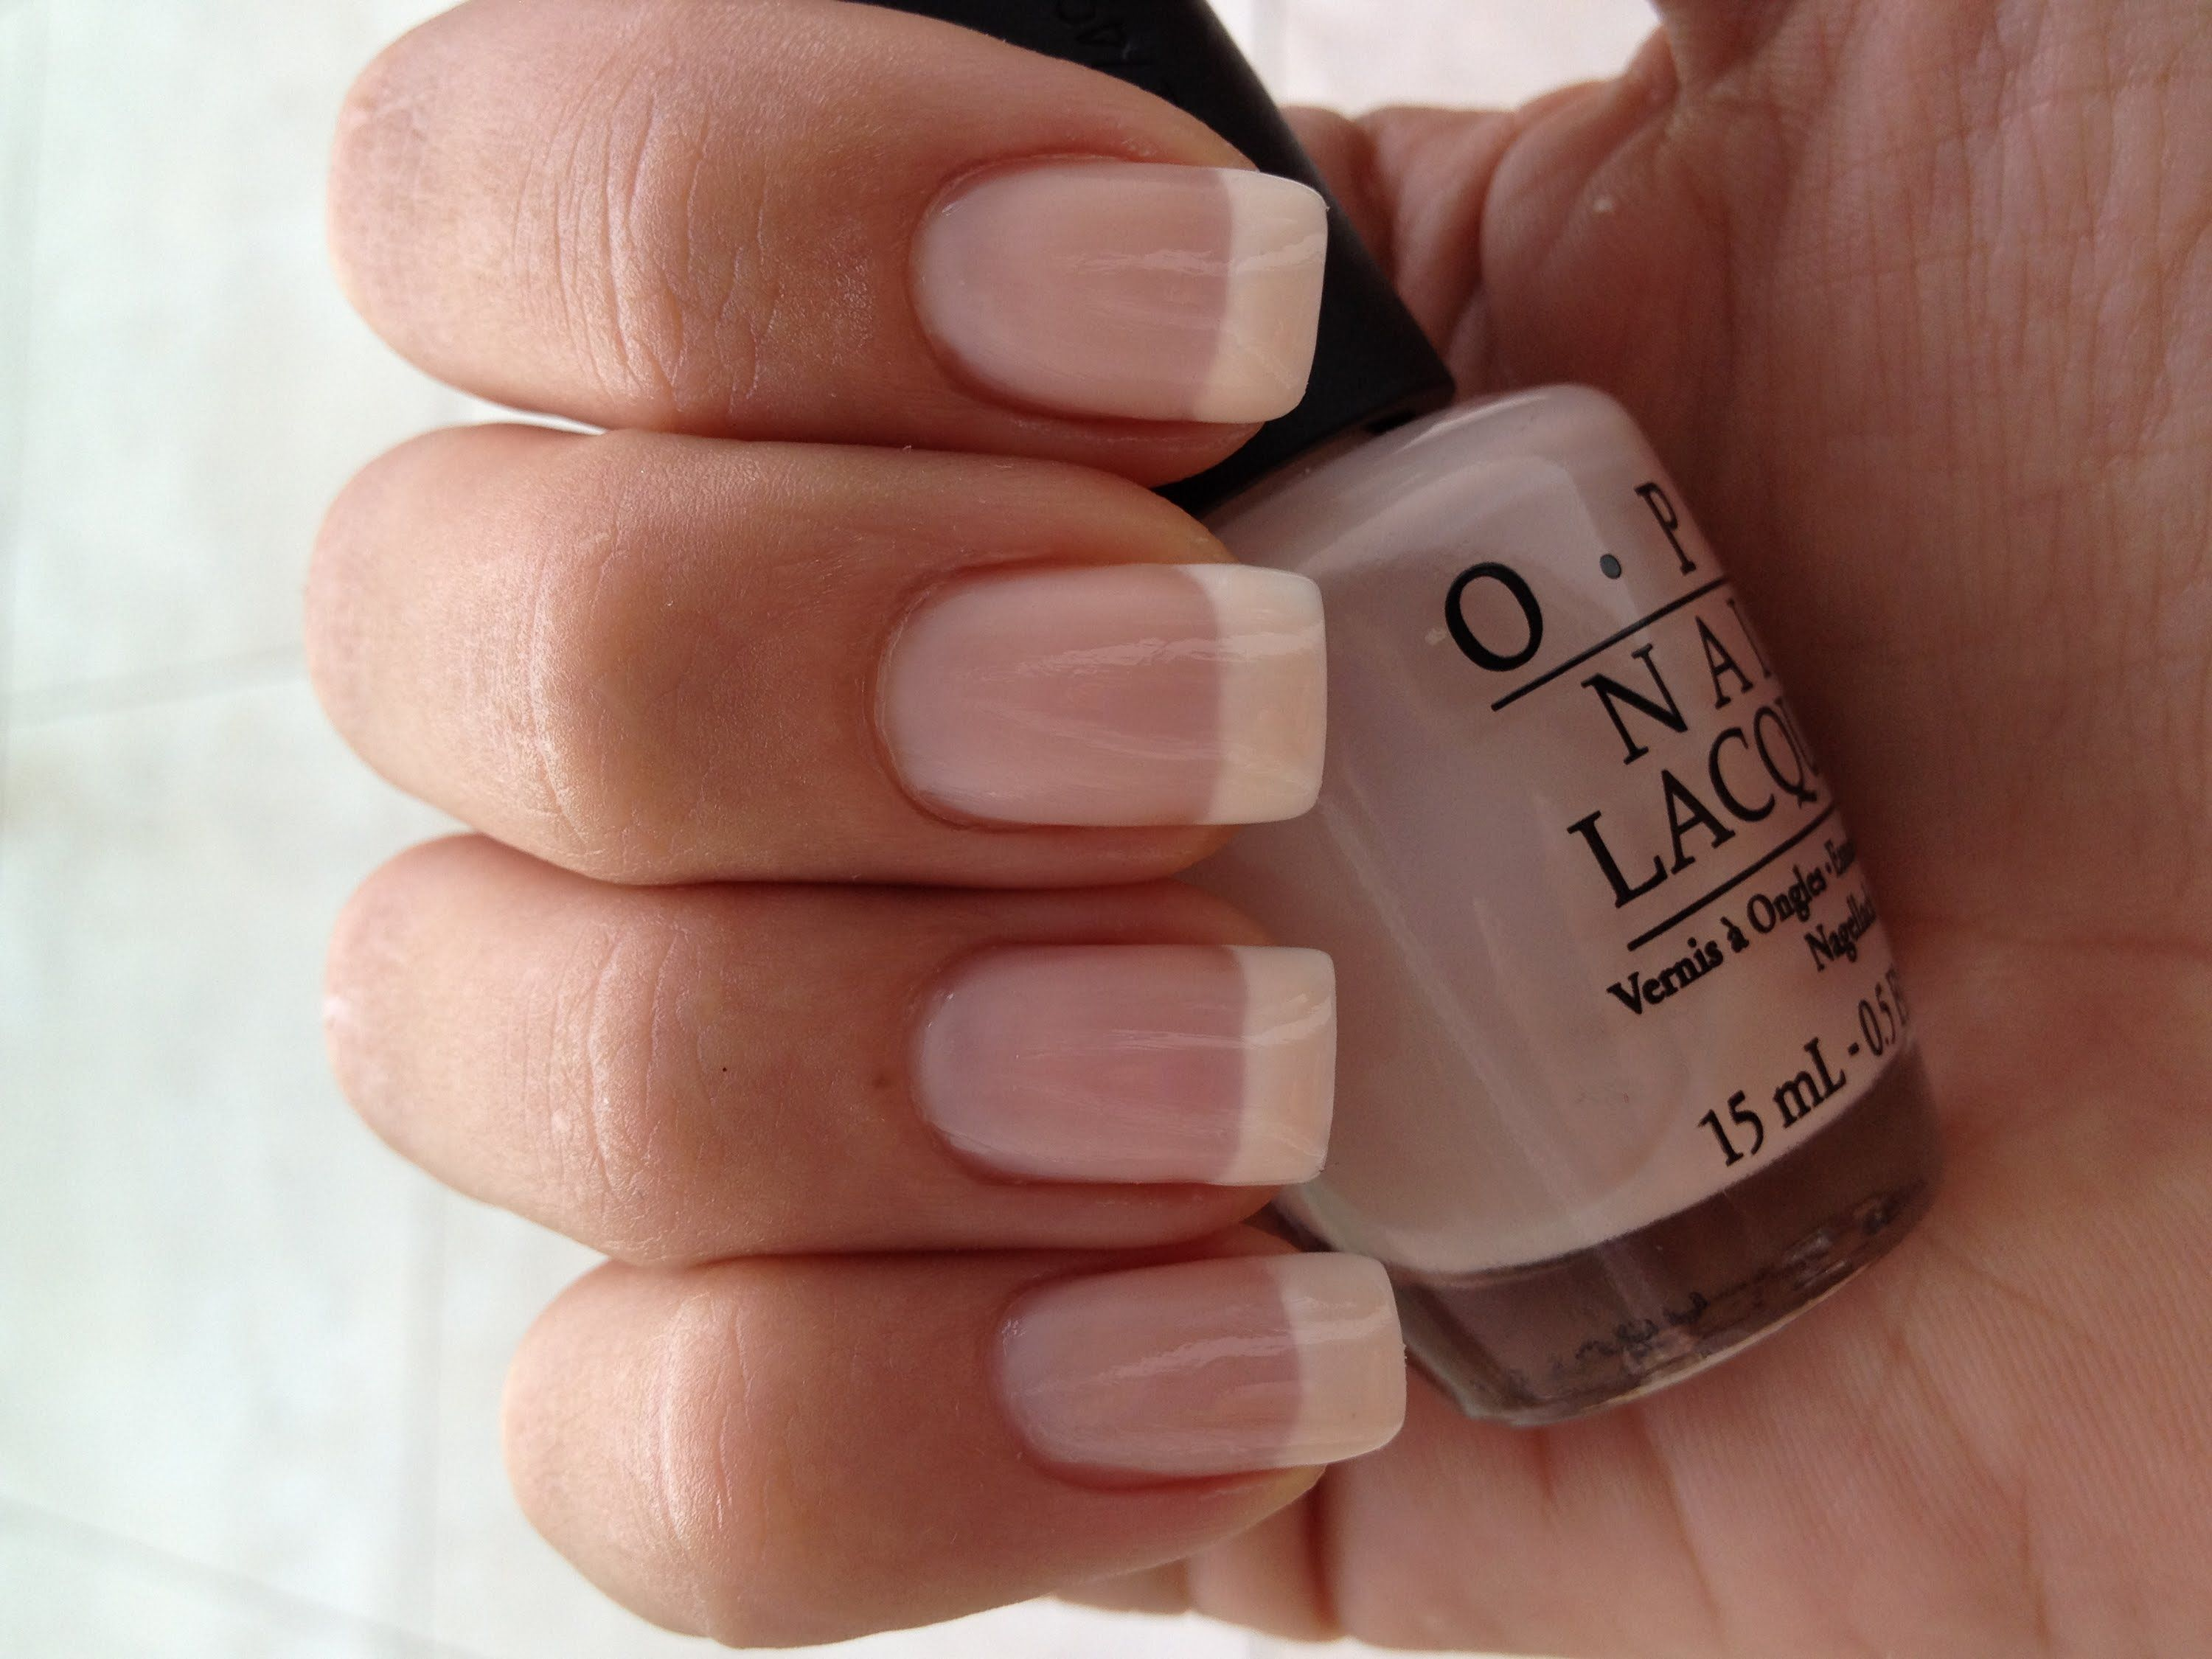 Perfect french manicure diy french manicure ongles magnifiques perfect french manicure diy french manicure solutioingenieria Image collections